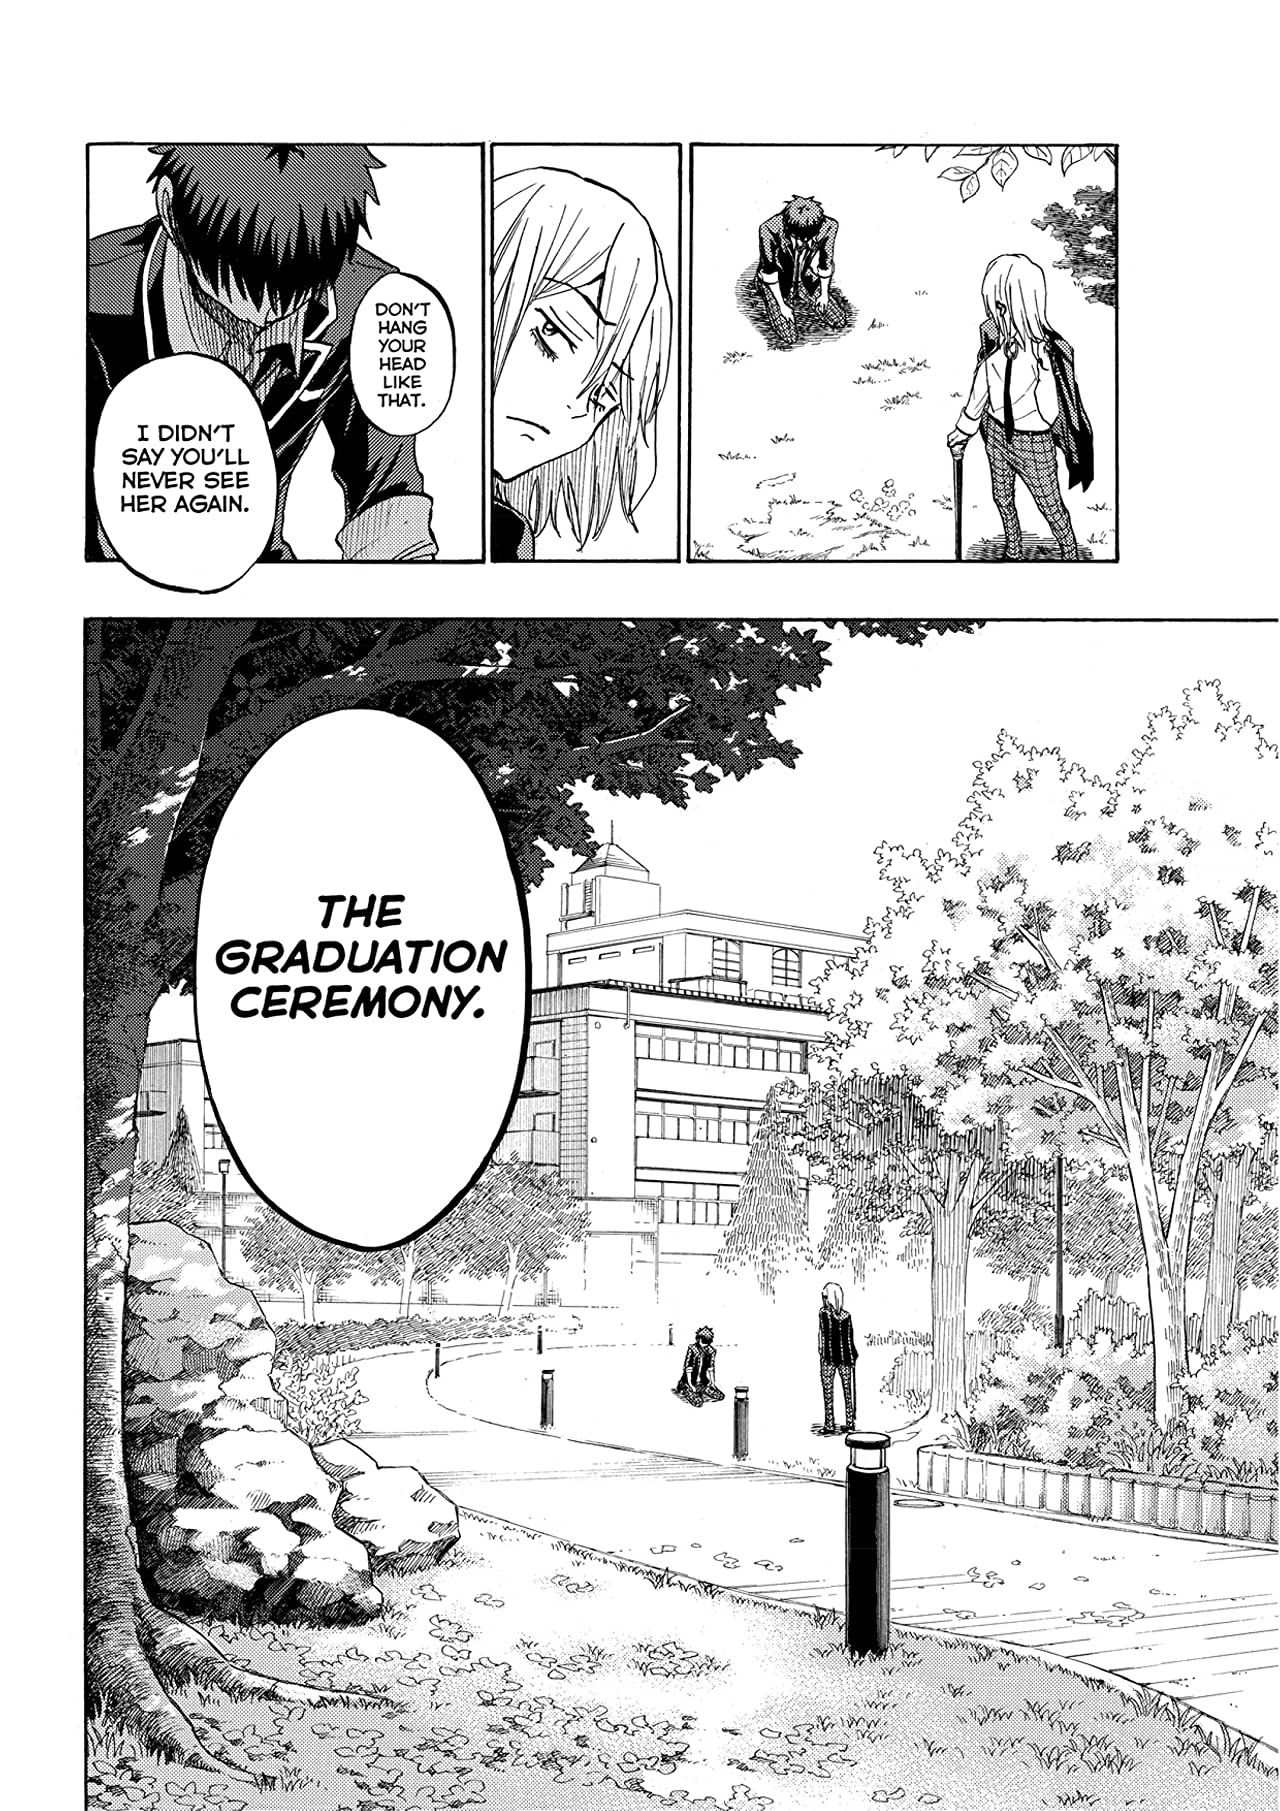 Yamada-kun and the Seven Witches #237